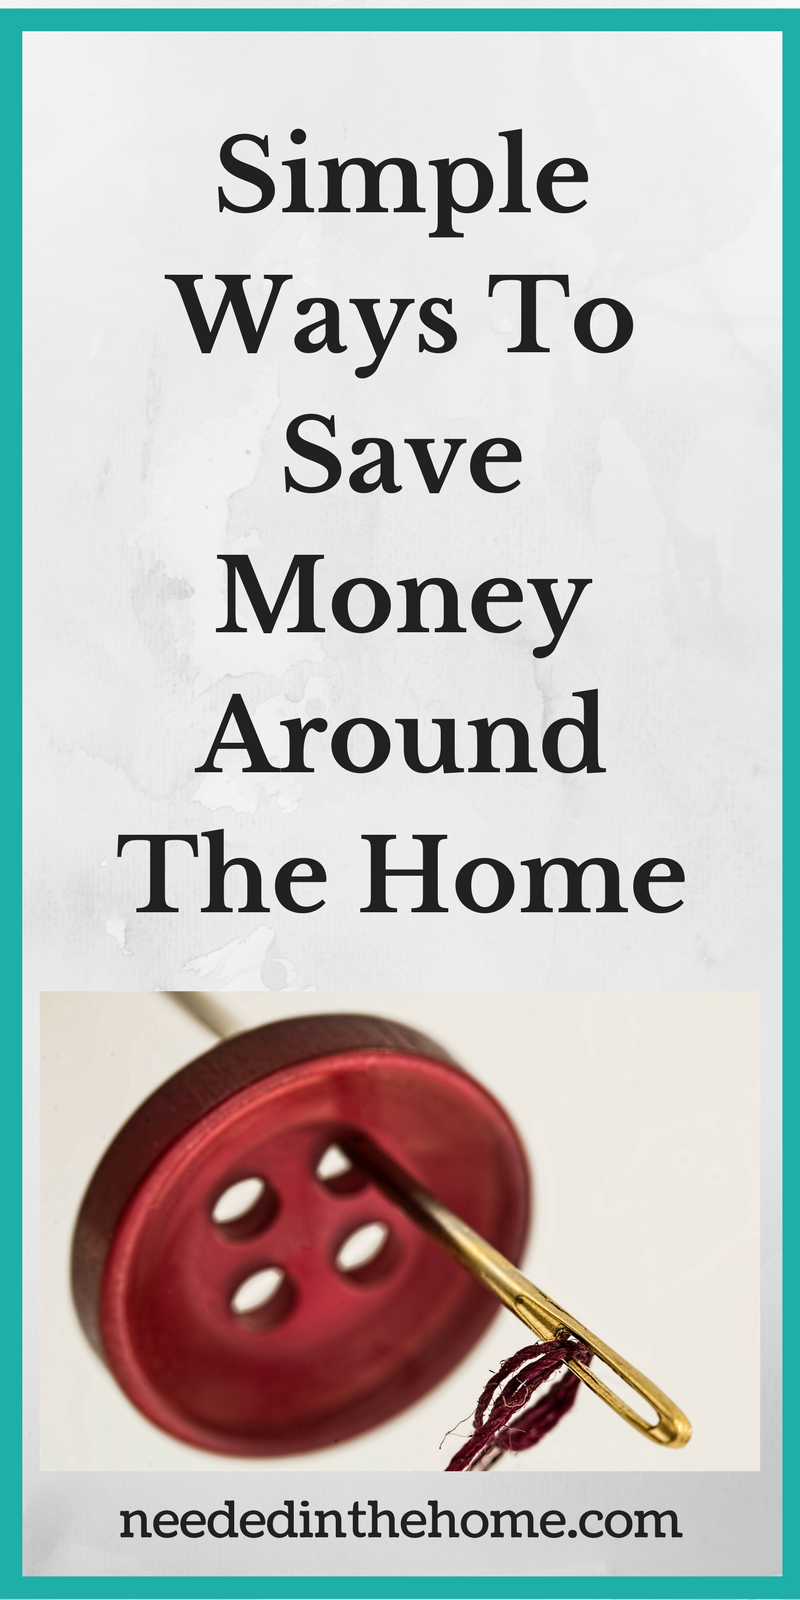 button needle thread Simple Ways To Save Money Around The Home